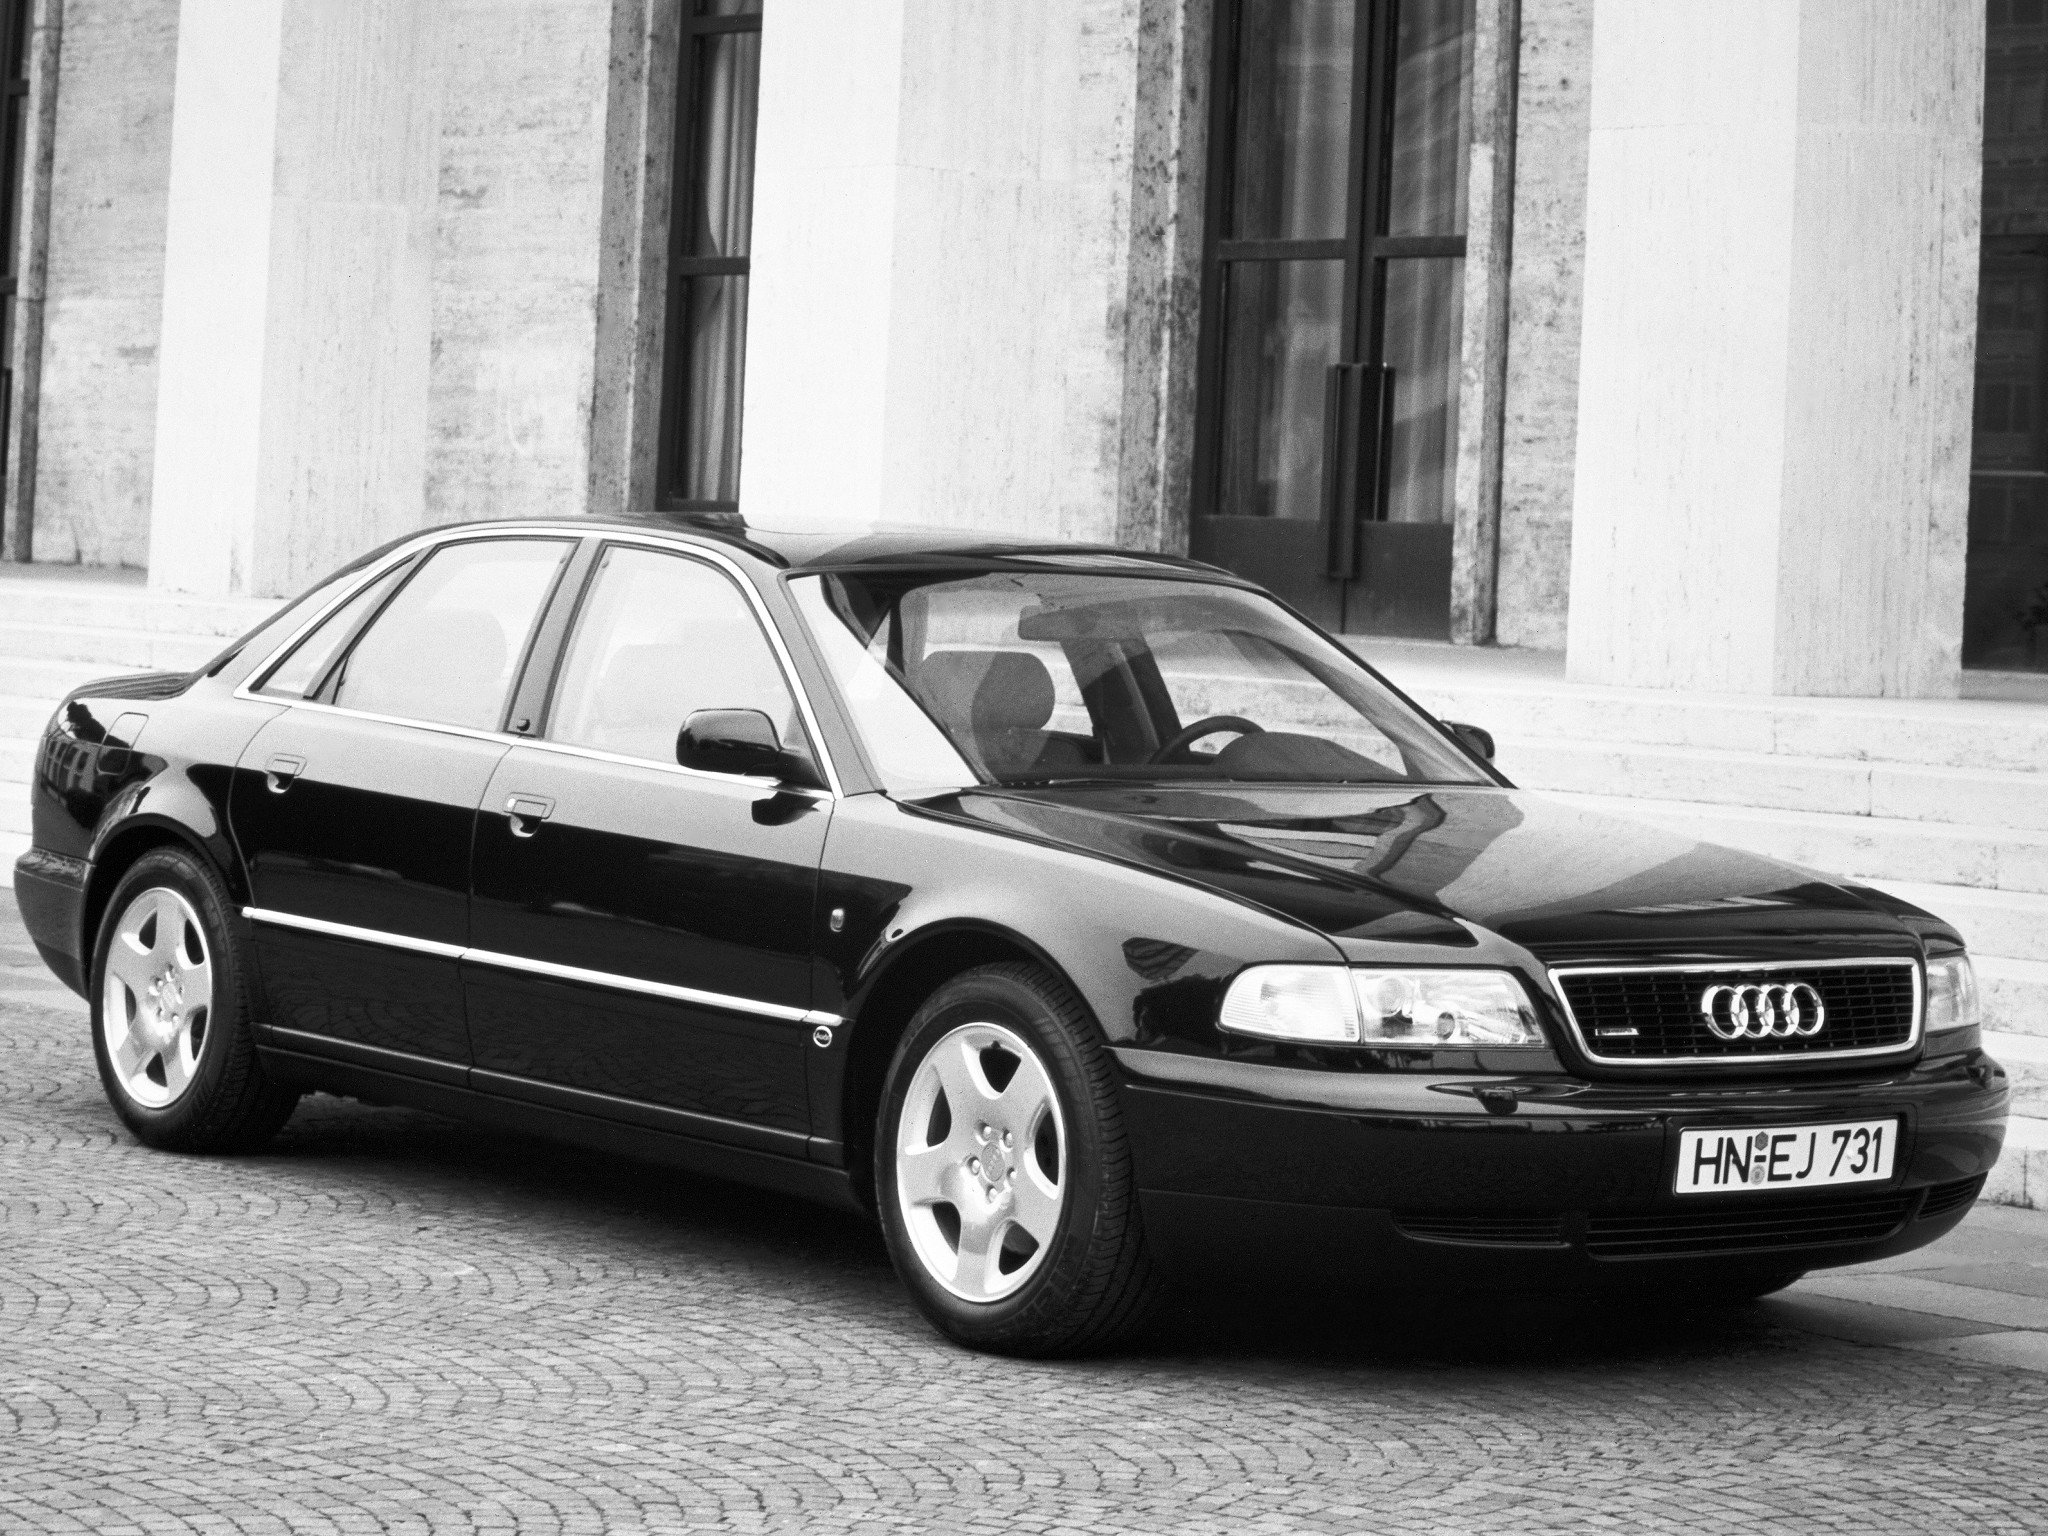 AUDI A8 (D2) specs & photos - 1994, 1995, 1996, 1997, 1998, 1999 - autoevolution